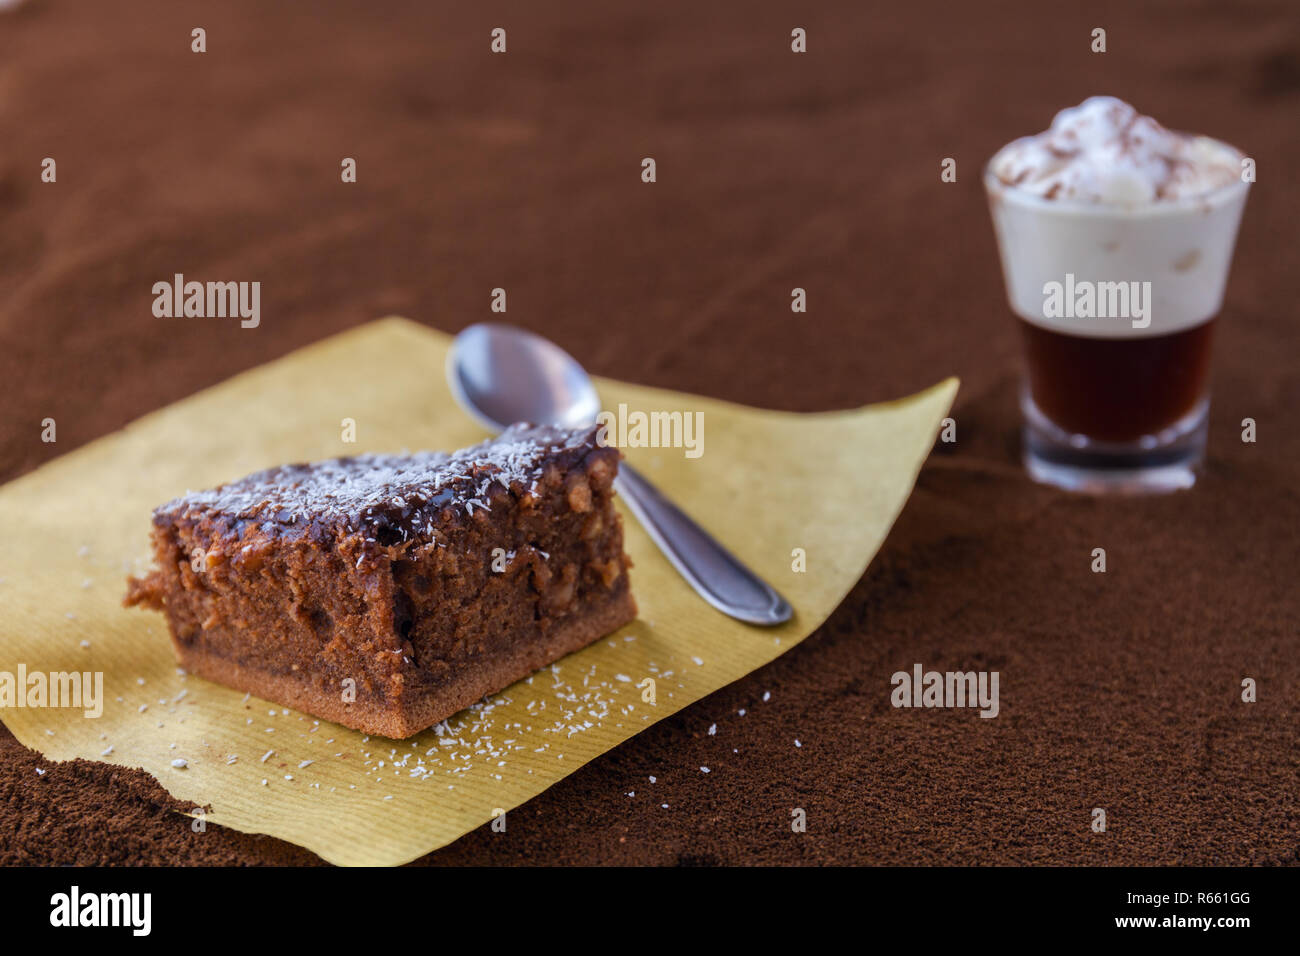 Little cup of piccolo latte macchiato on a table covered with ground coffee as a background and chocolate brownie with cocoa cream and coconut chips Stock Photo